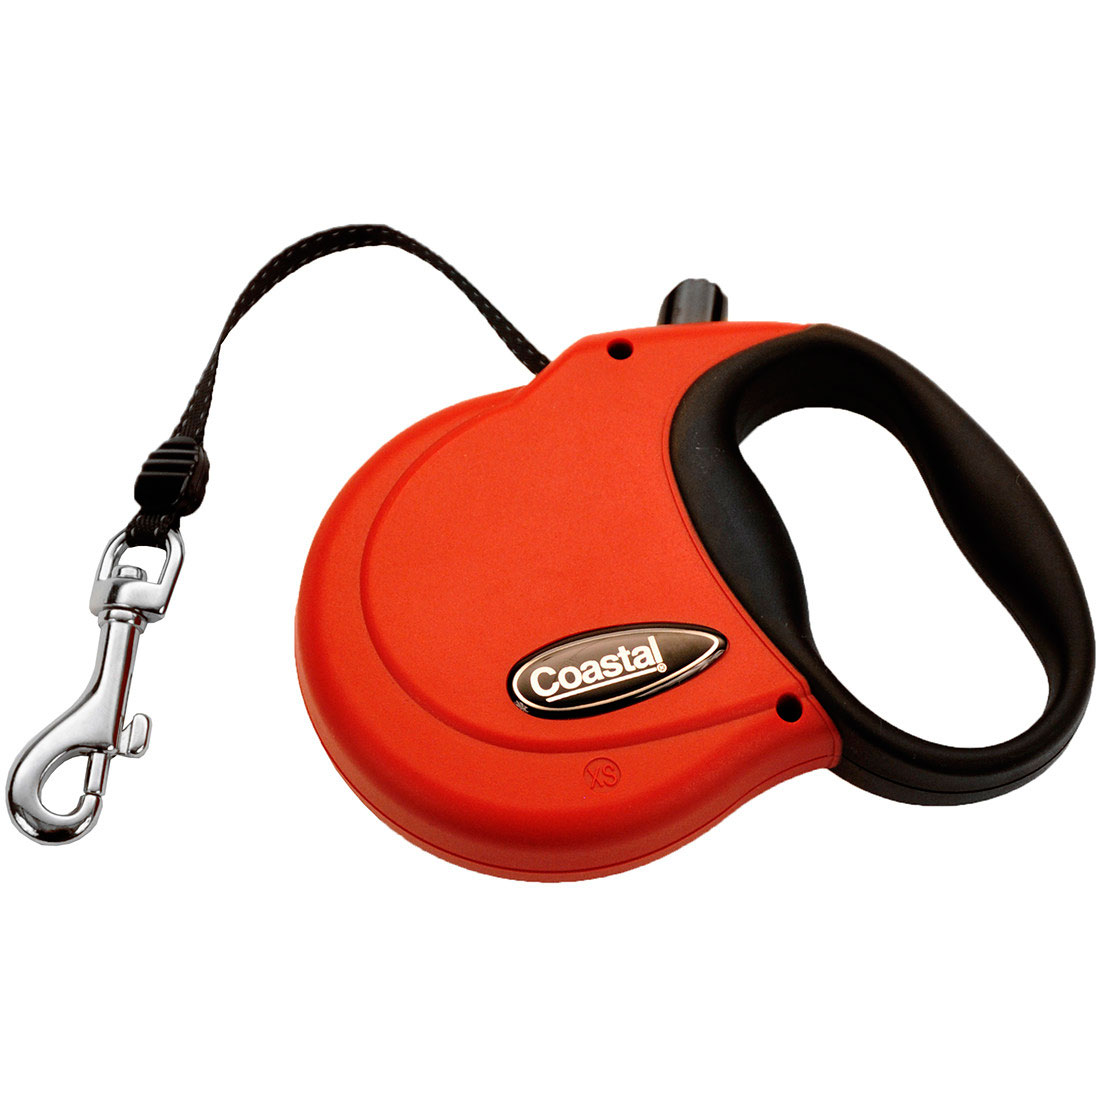 Coastal Power Walker Retractable Dog Leash, Red, X-Small, 12-in